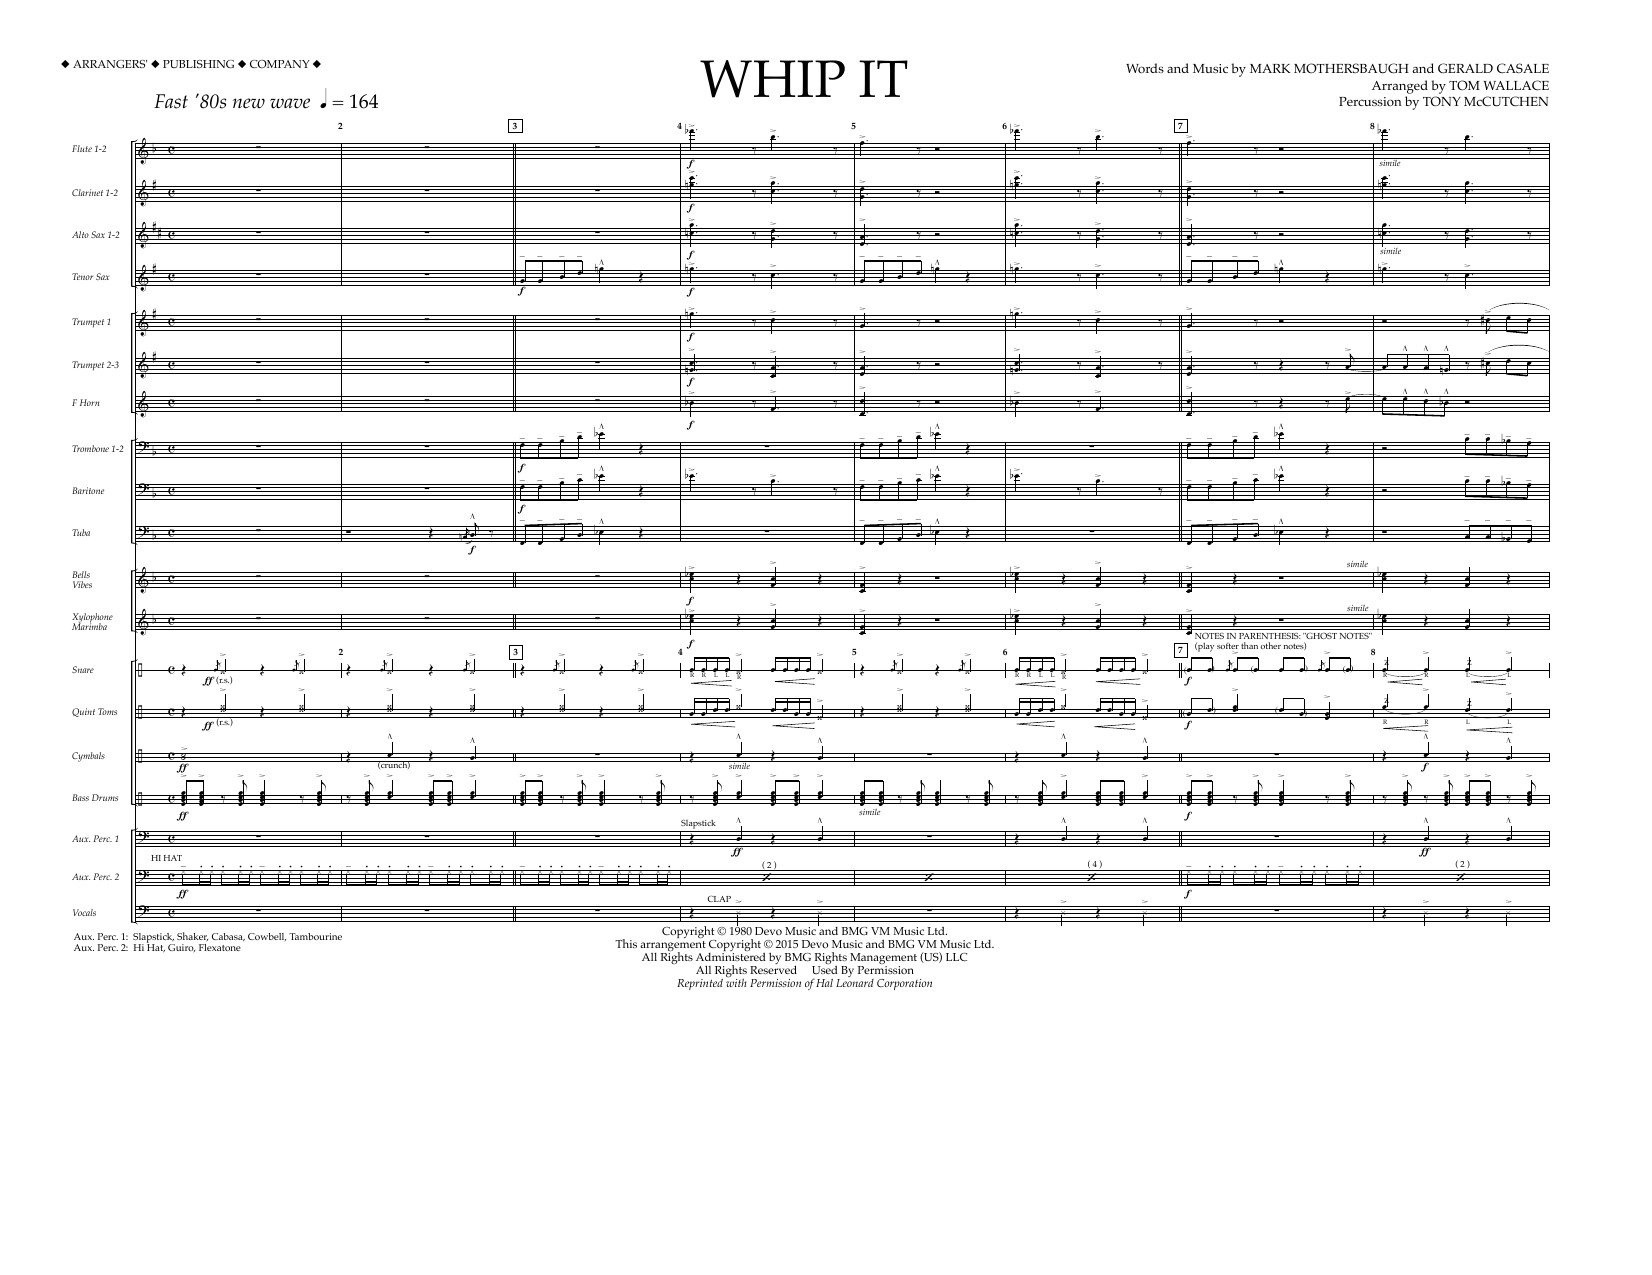 Whip It (COMPLETE) sheet music for marching band by Tom Wallace, Devo and Mark Mothersbaugh. Score Image Preview.